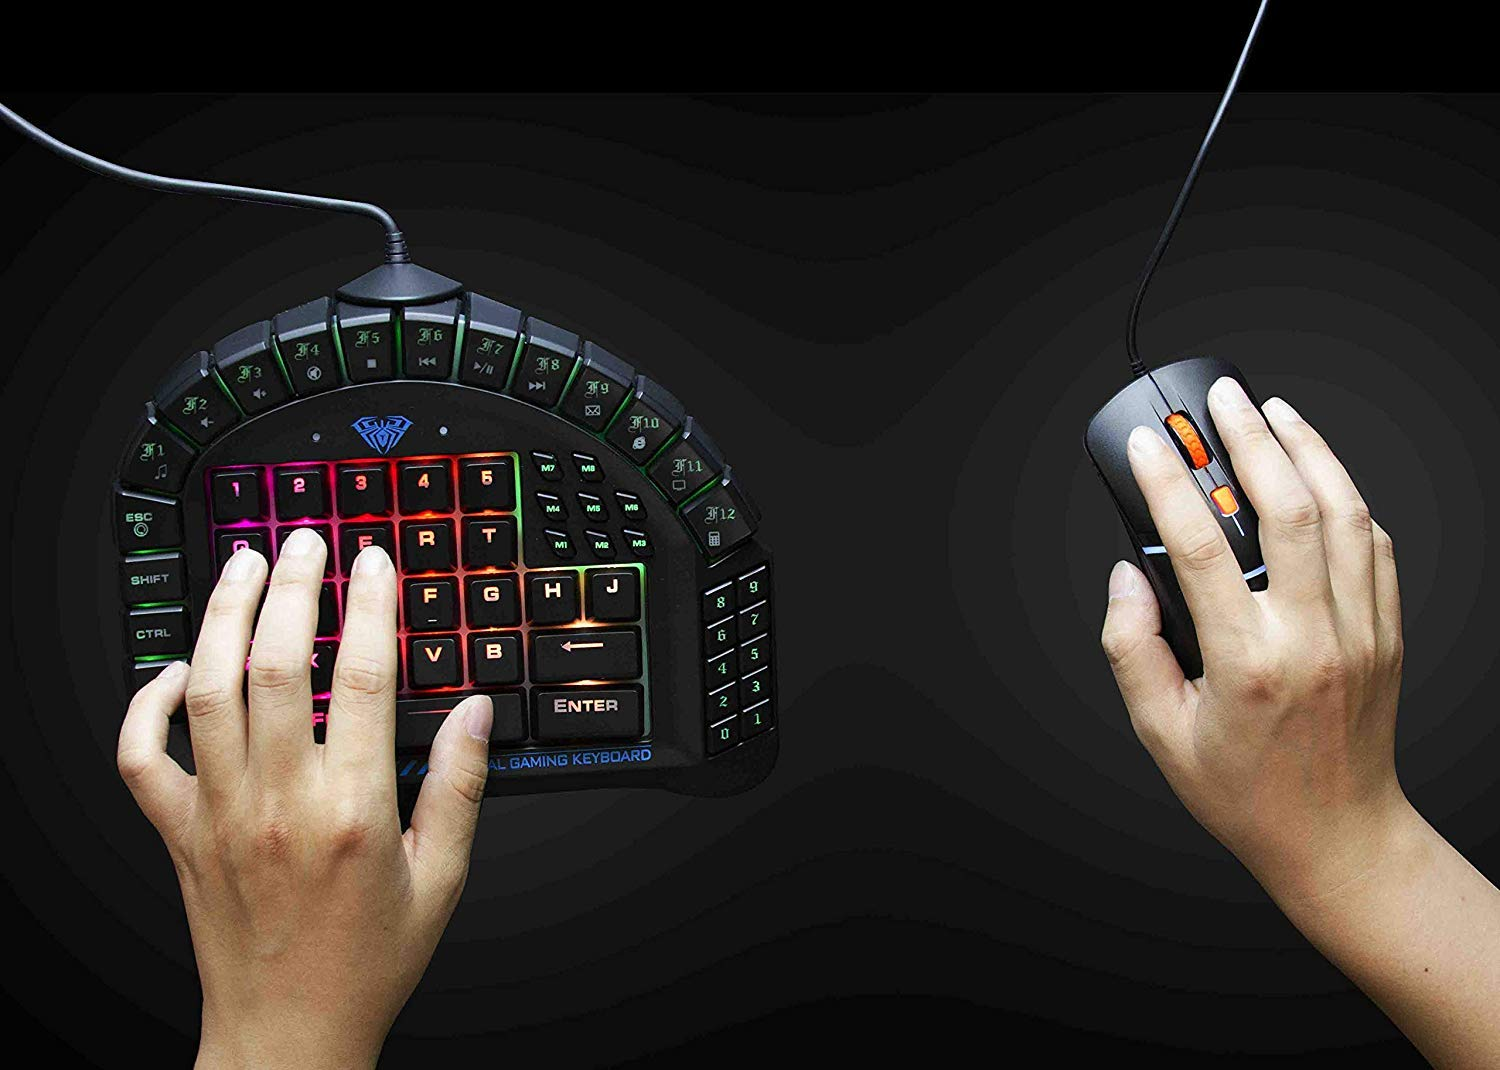 Amazon.com: AULA One Handed Gaming Keyboard, RGB LED Backlist Mechanical Keyboard with Removable Hand Rest for PC Gamer & Typing: Electronics